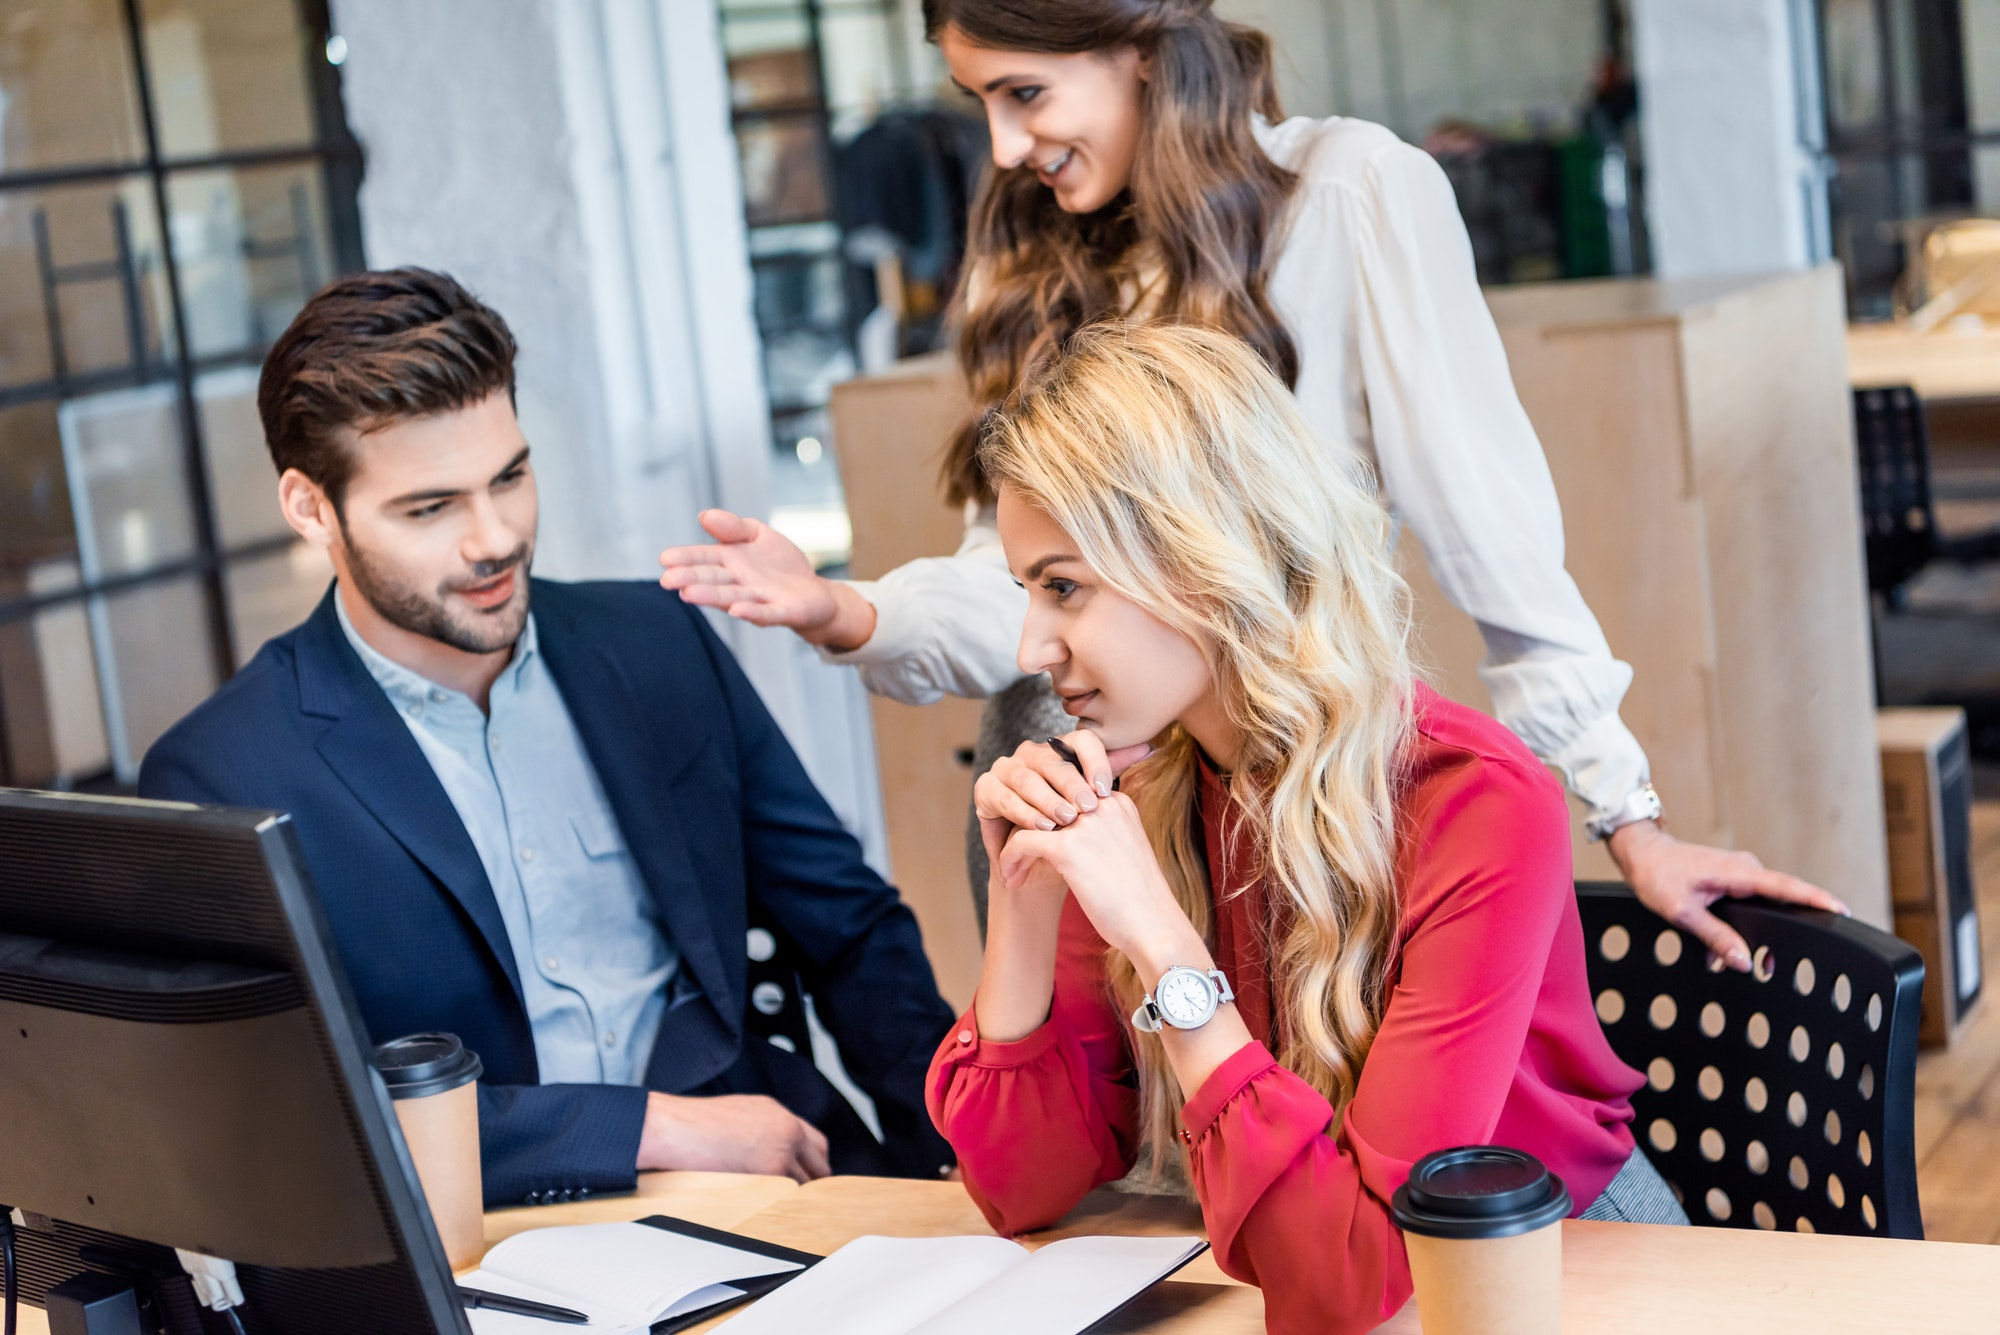 businessman and businesswomen working on business idea together in office